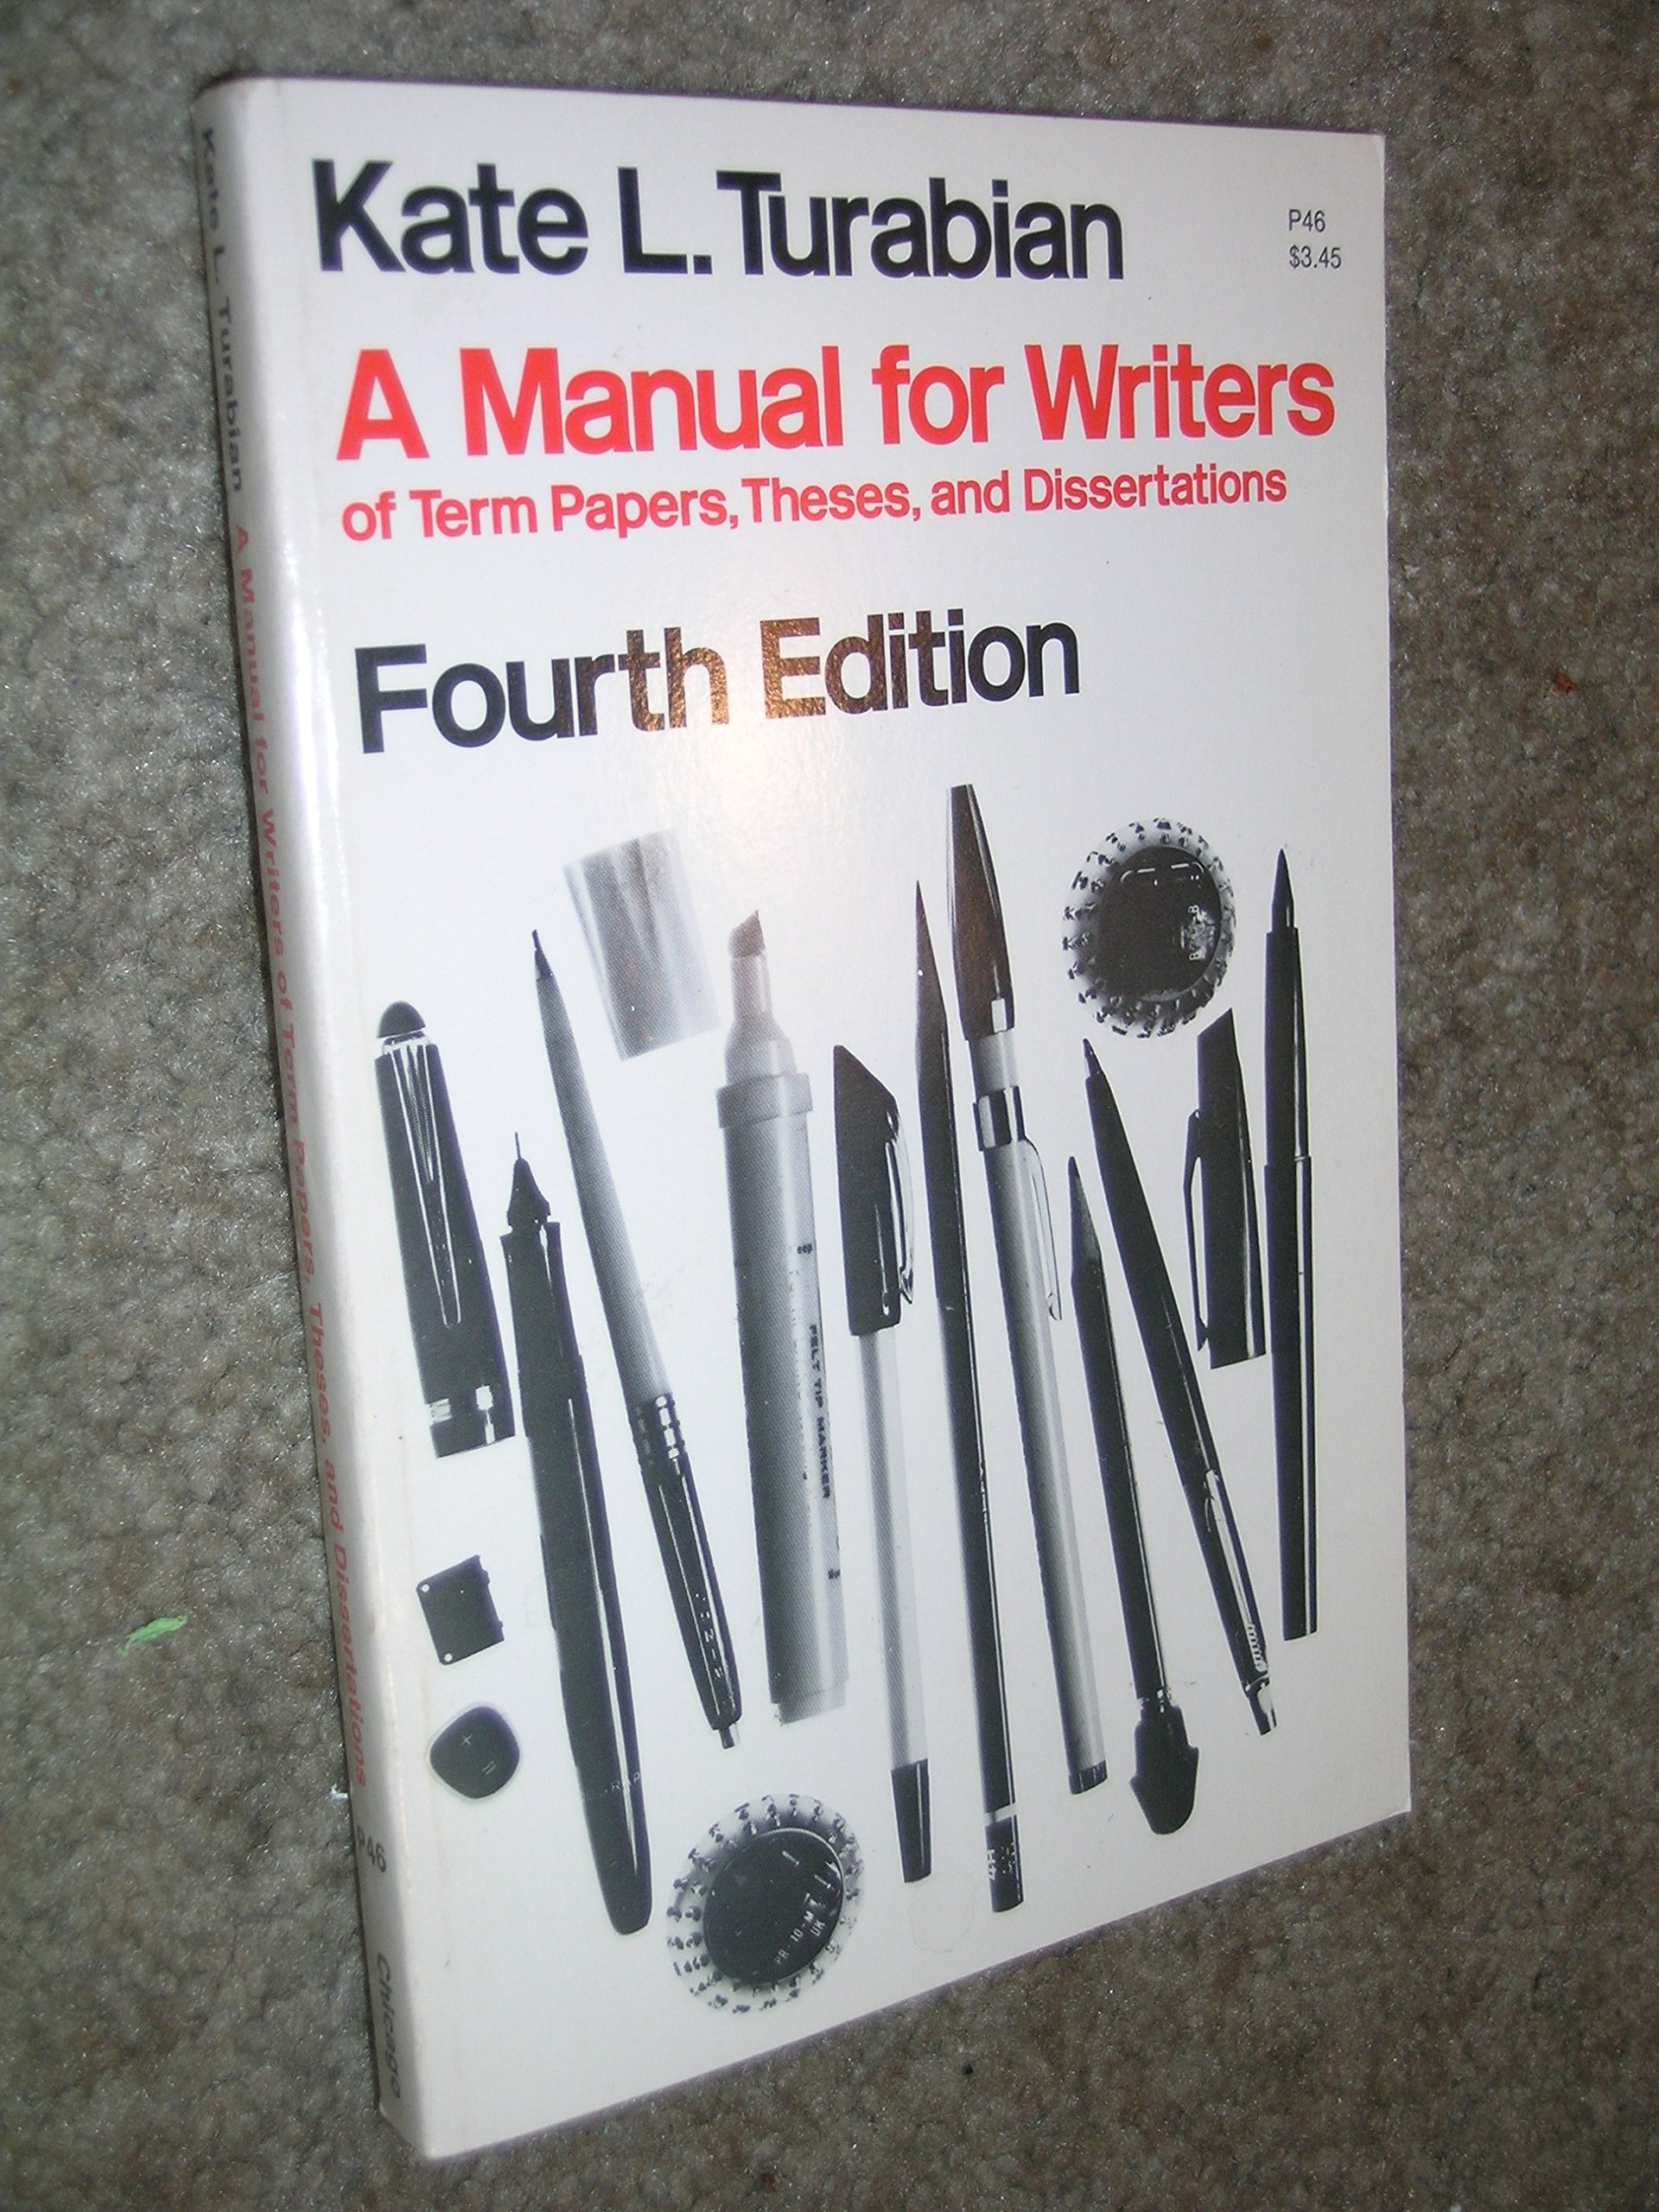 009 Research Paper Manual For Writers Of Papers Theses And Dissertations 8th Imposing 13 Full